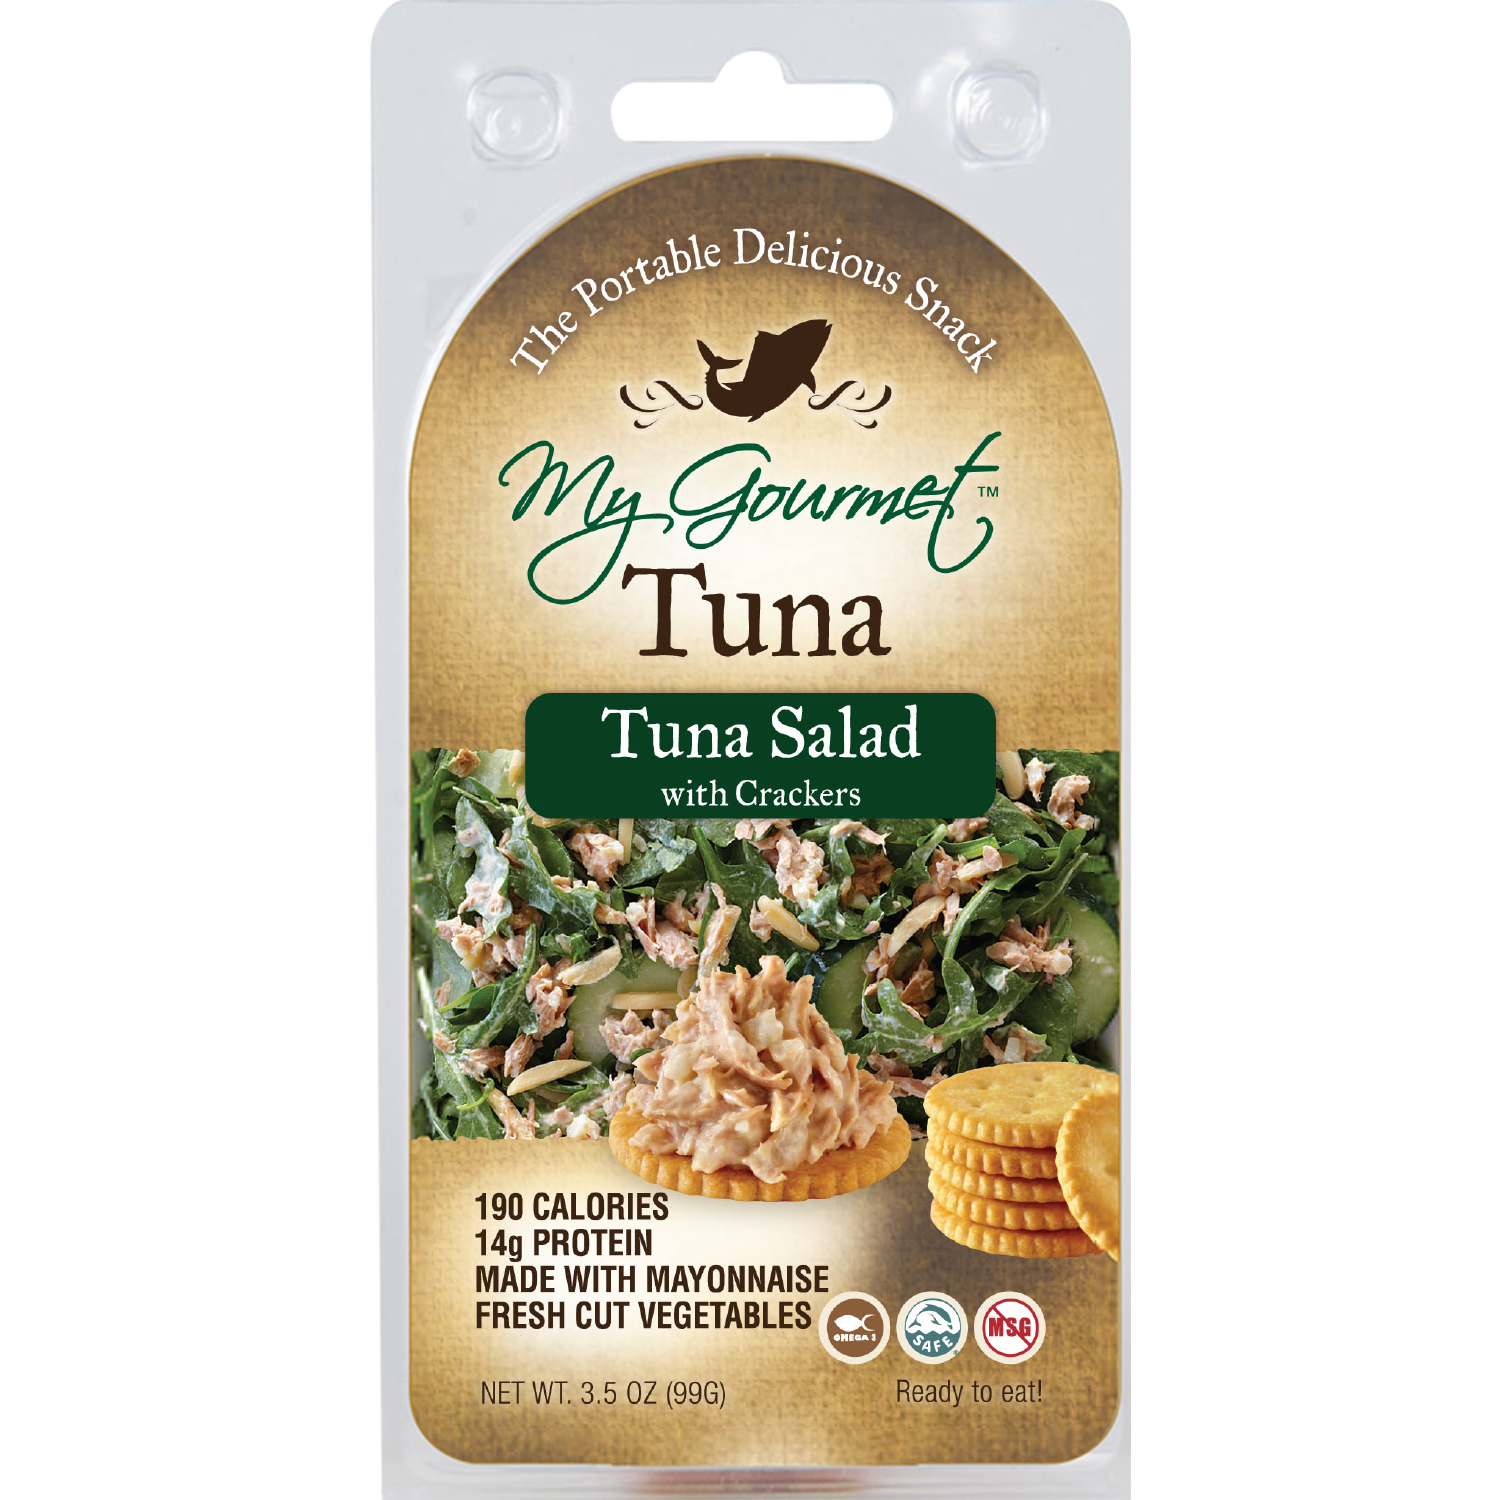 Snack Pack - Tuna Salad (6-Pack)